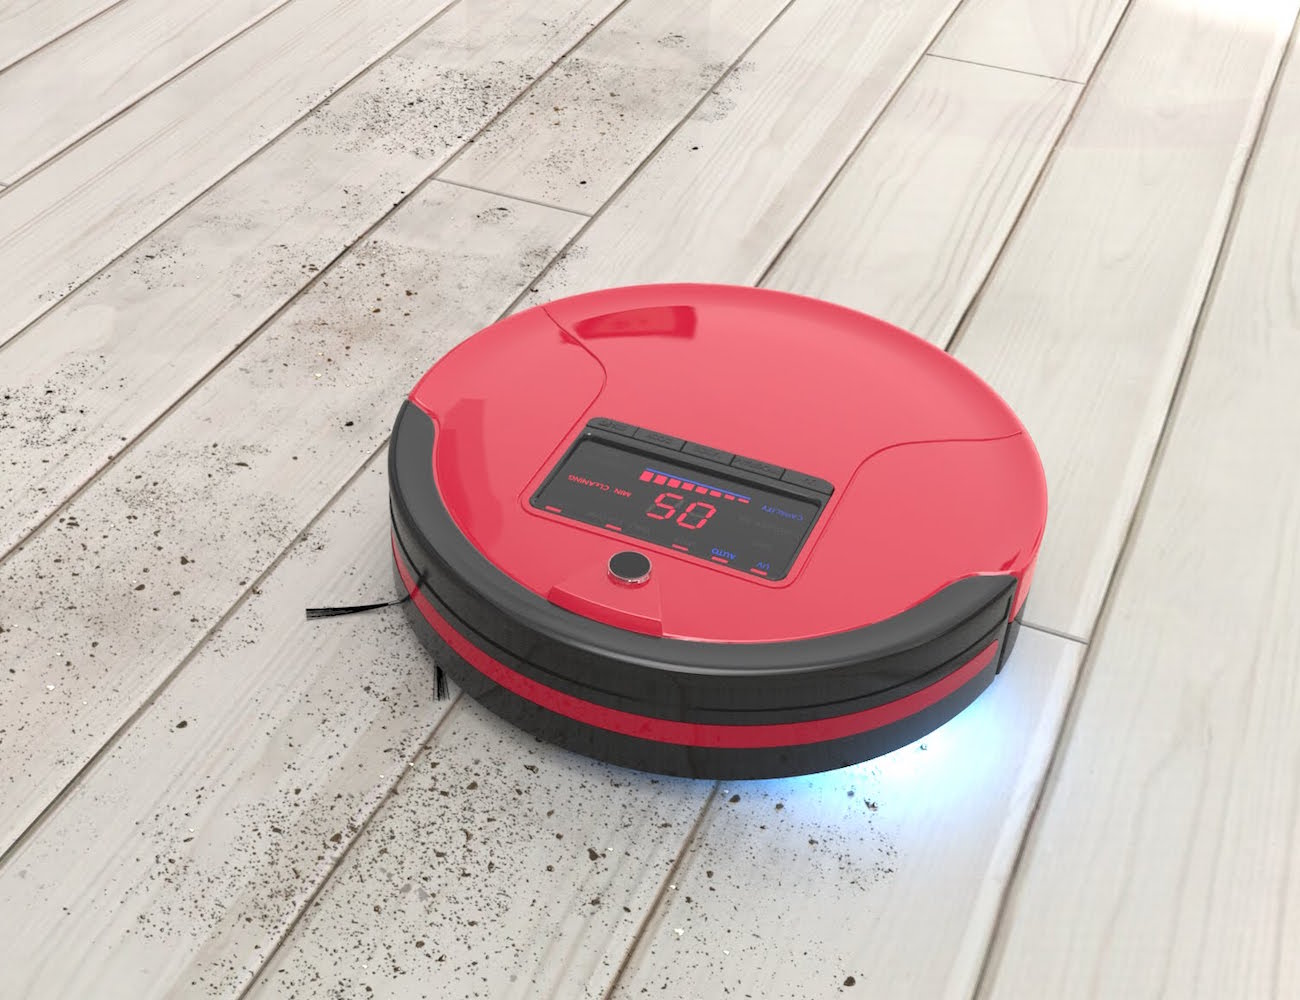 bObsweep Robotic Vacuum and Mop